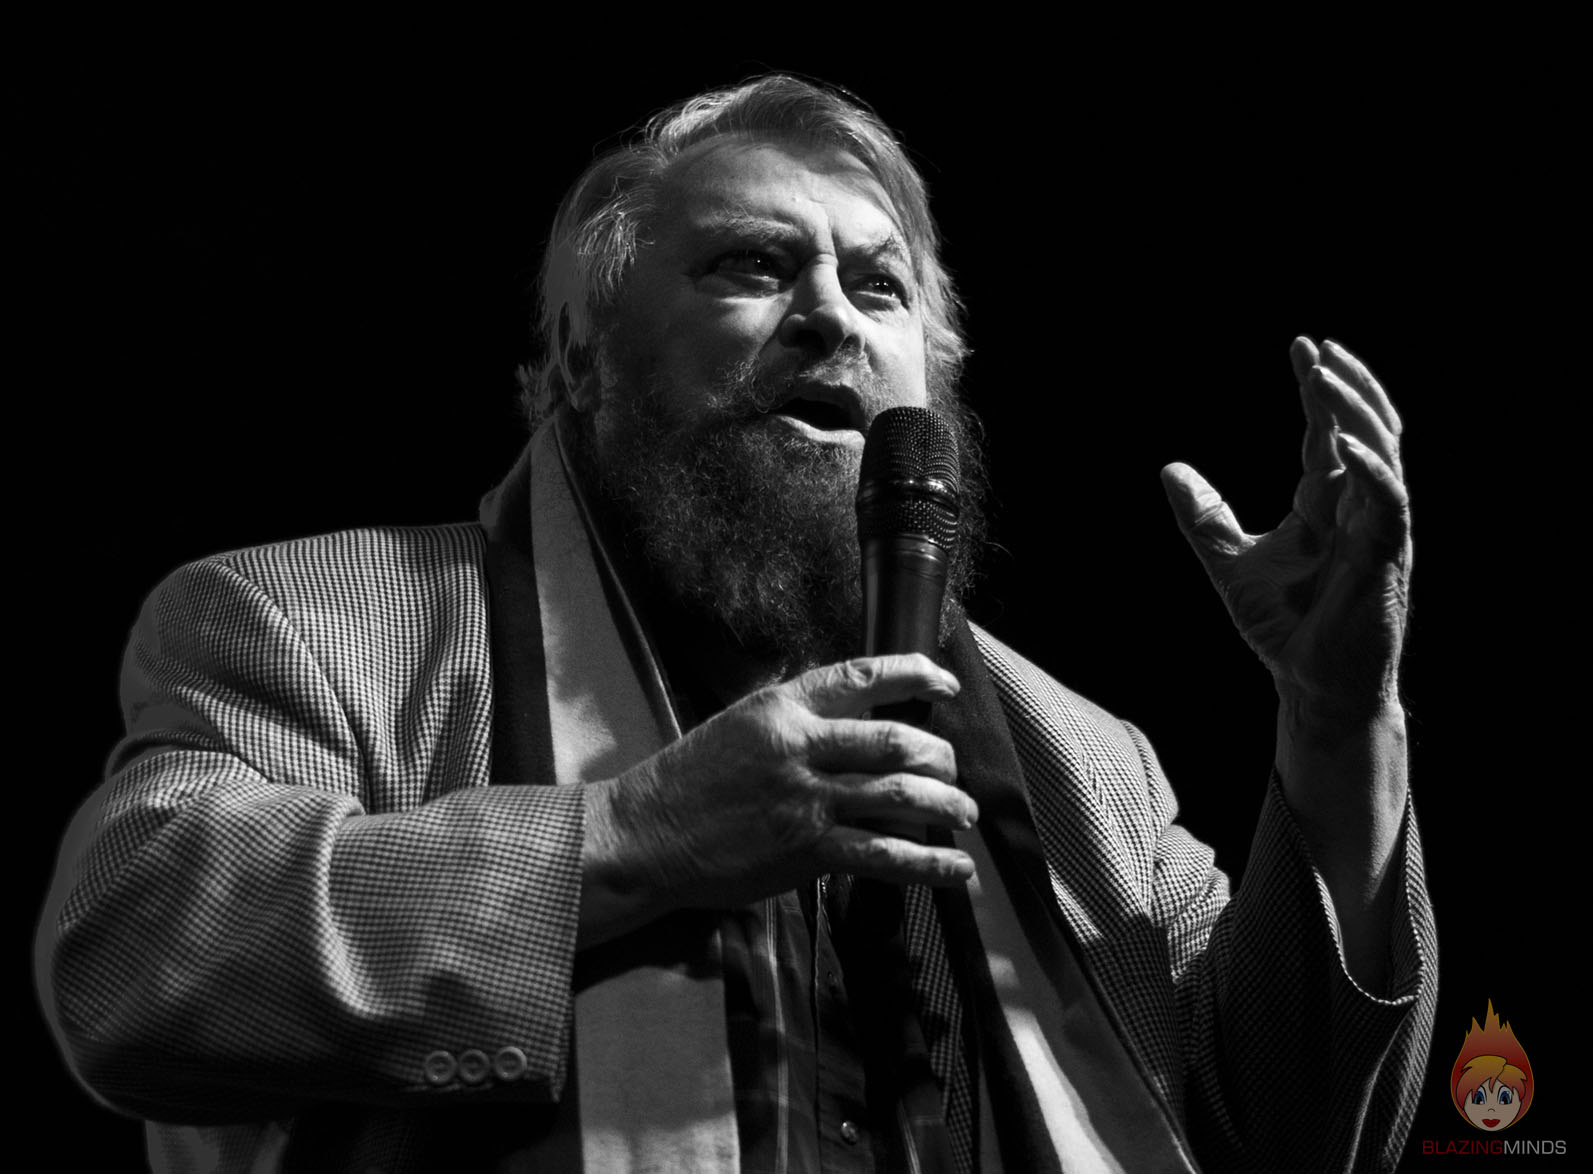 Photographing Brian Blessed, Eve Myles and Kai Owen at SFW7